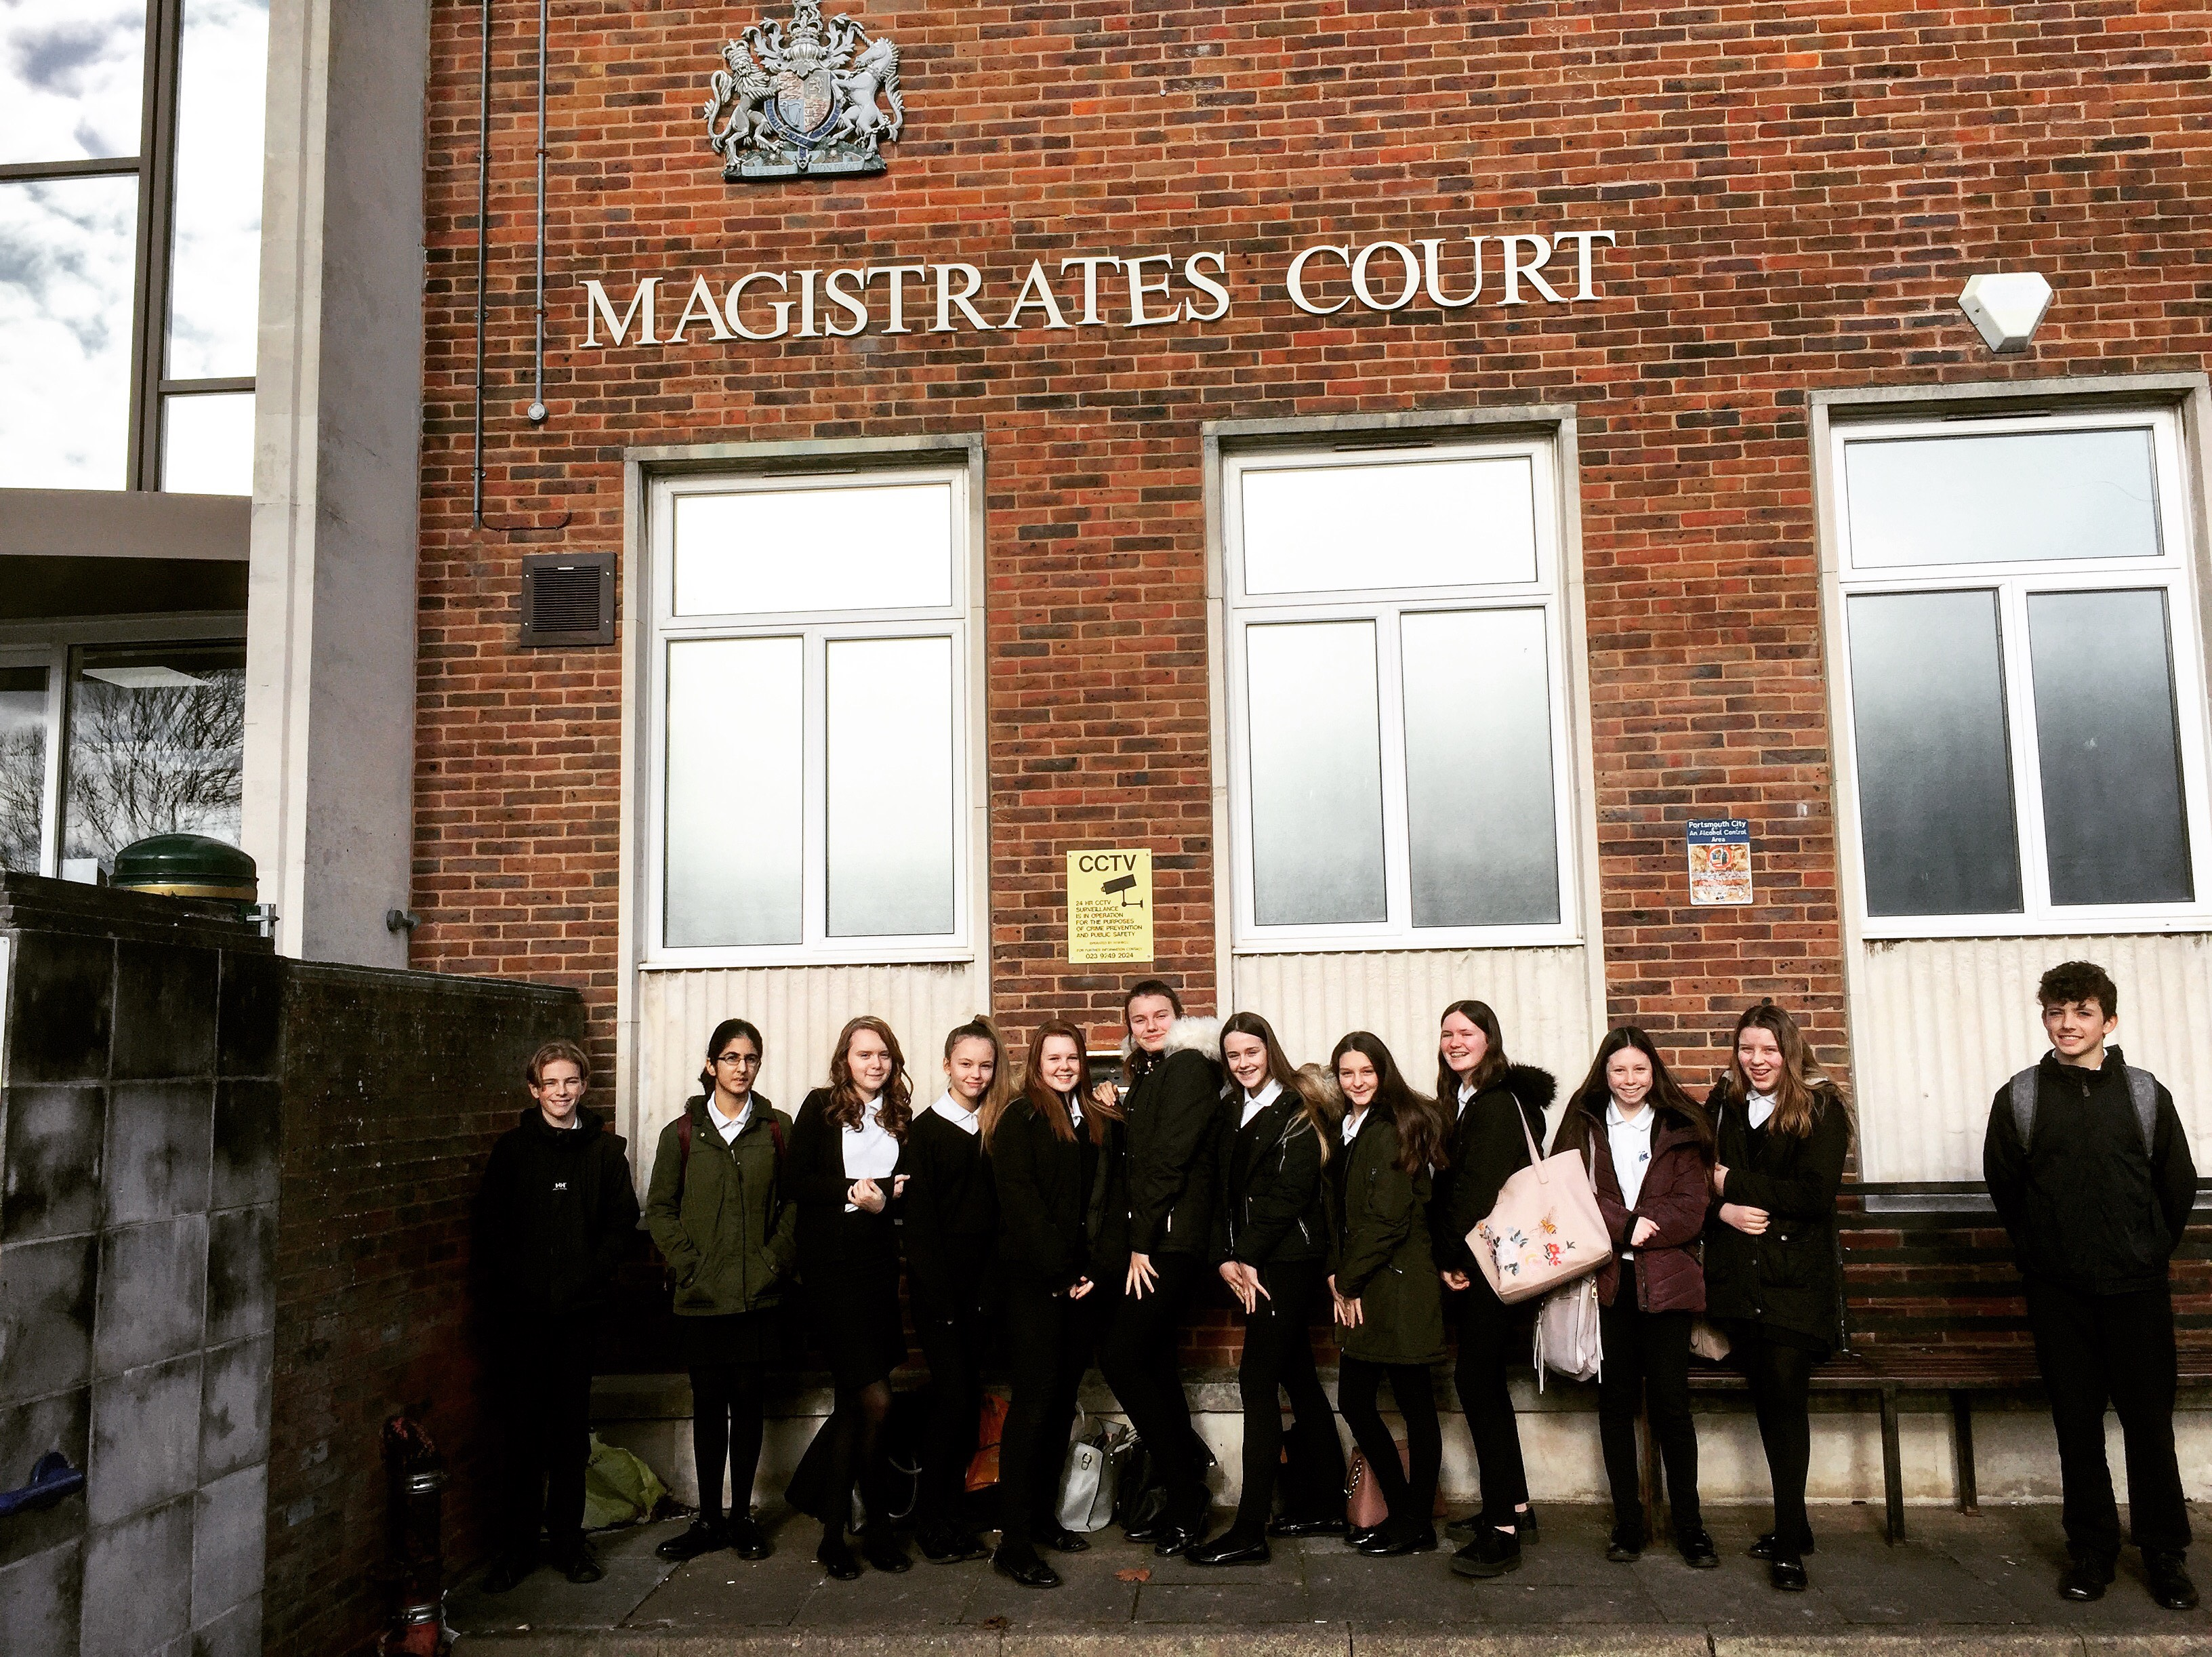 Magistrates Court 1